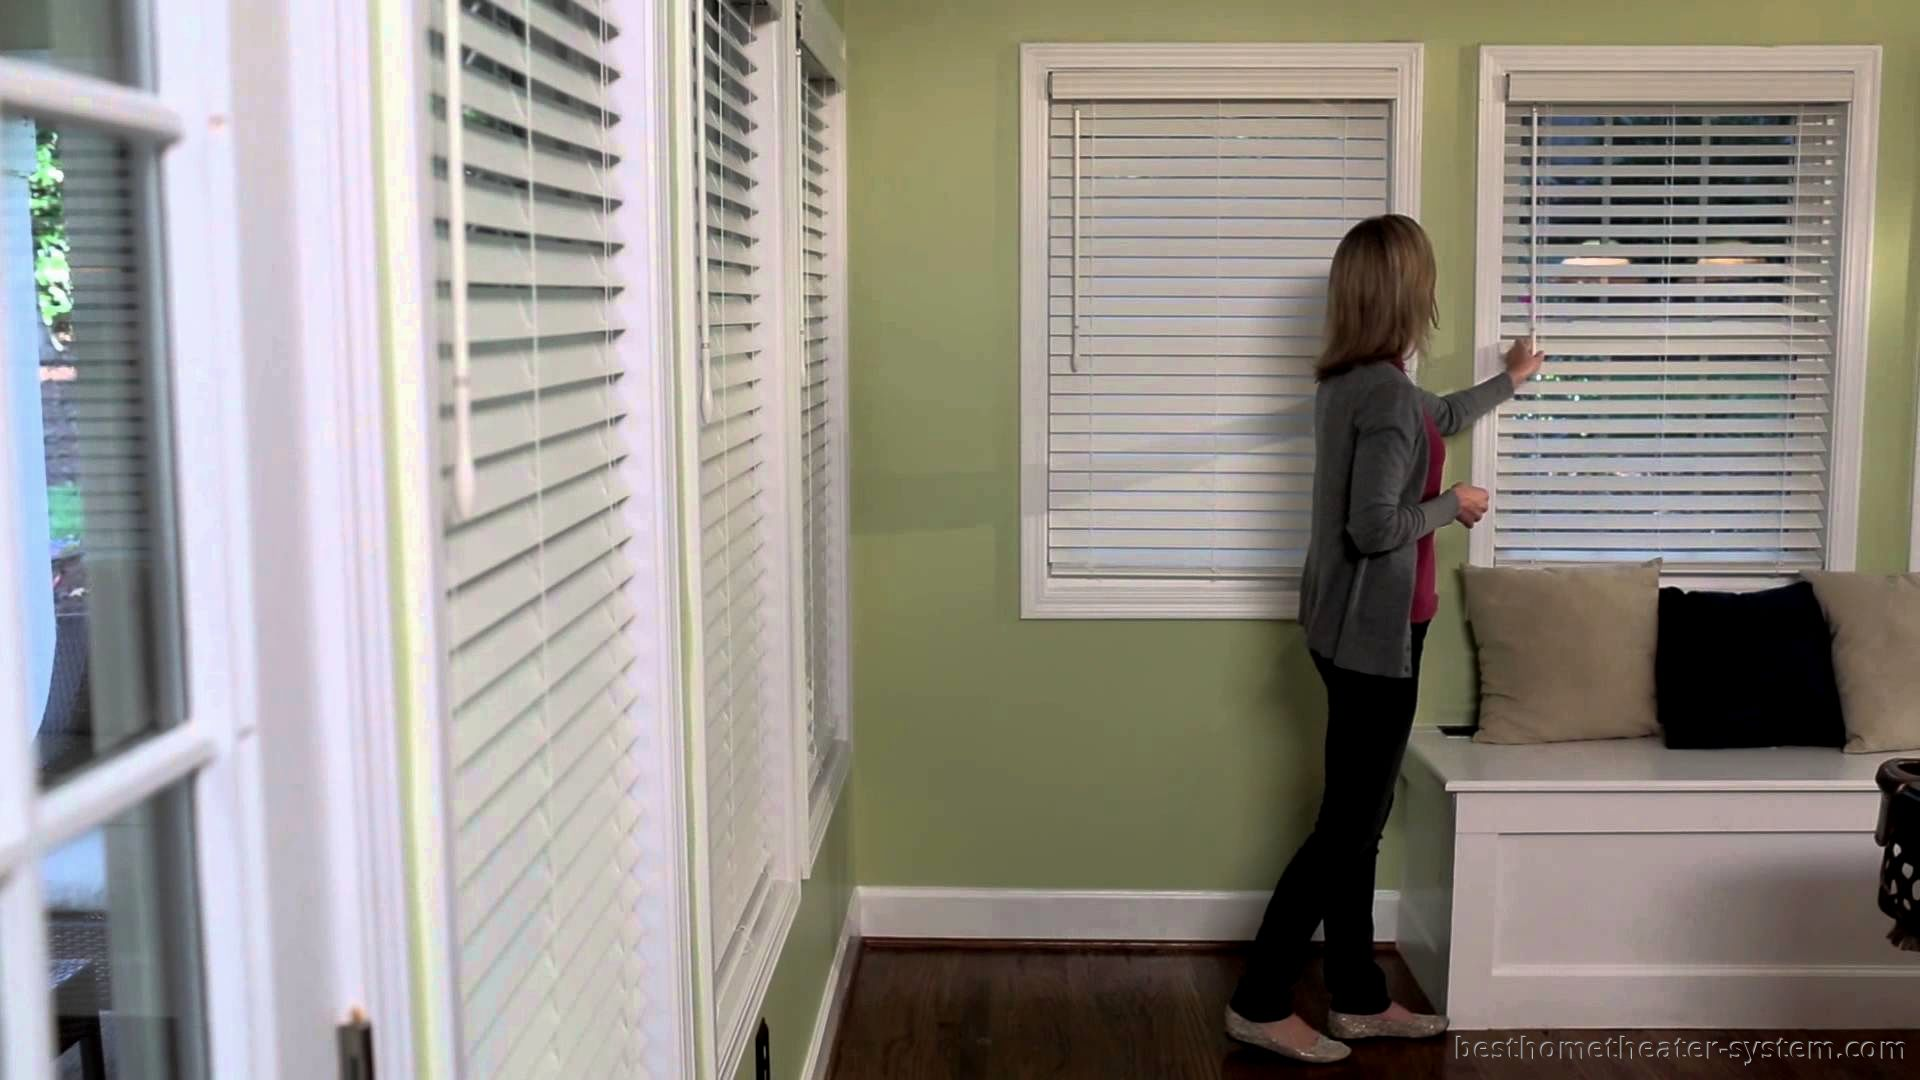 Lowes Shades | Blinds and Shades Lowes | Solar Shades Lowes